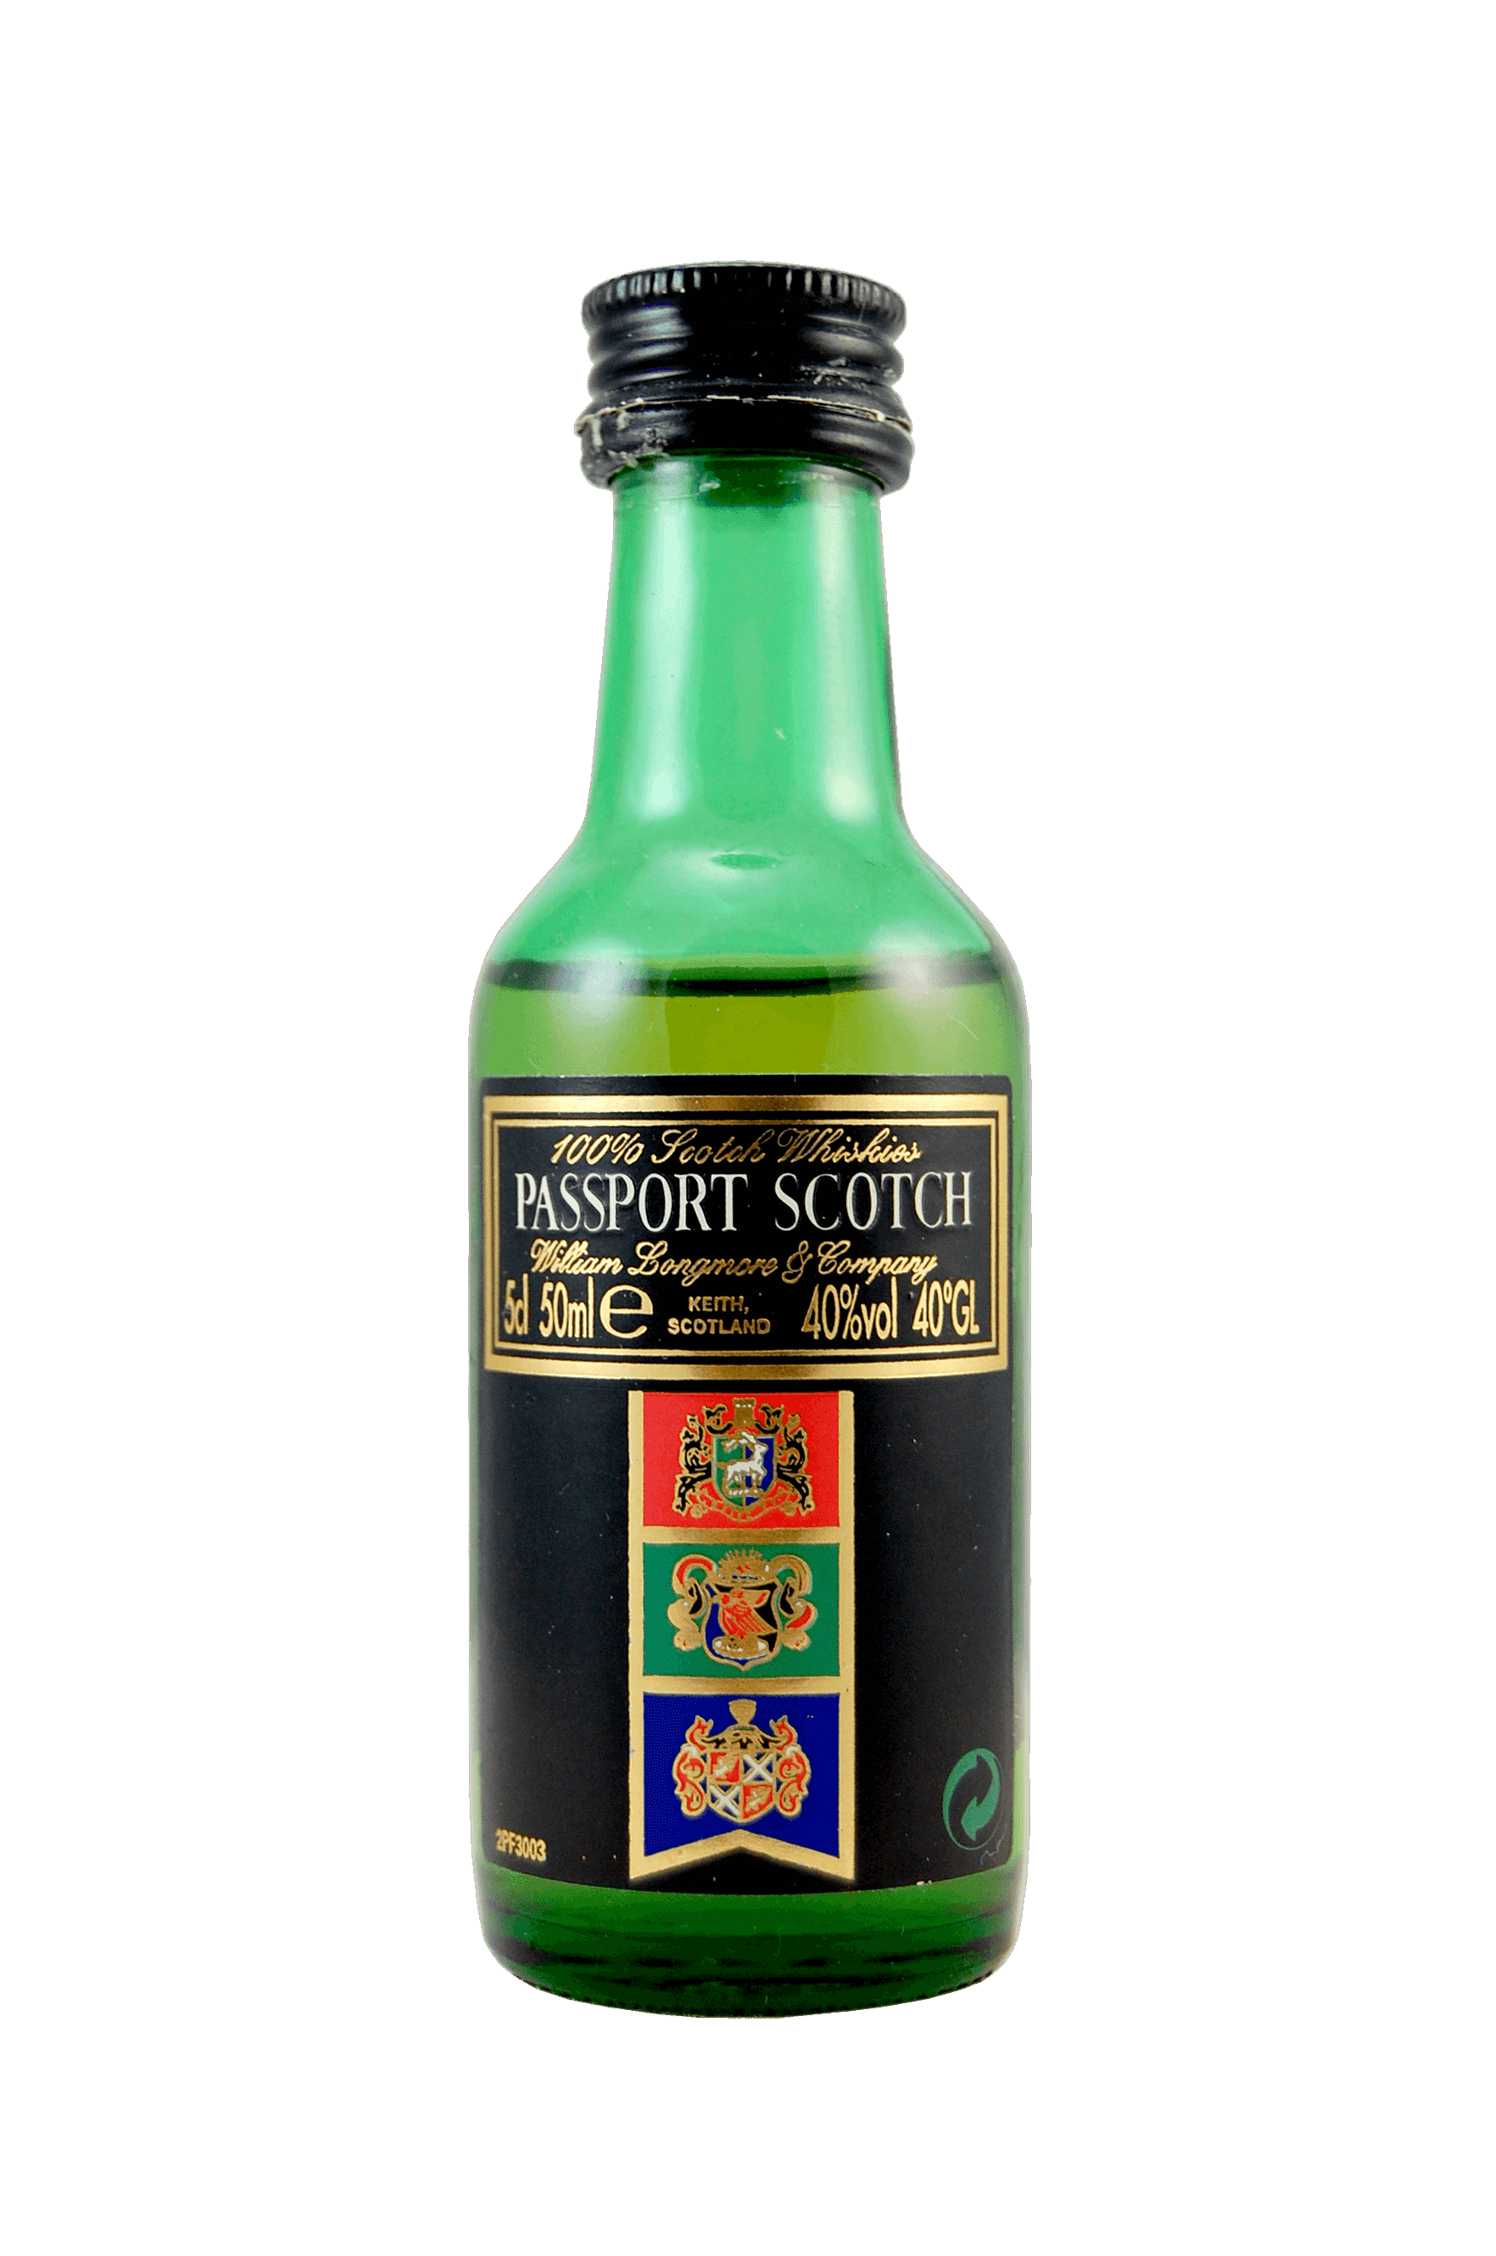 Passport Scotch Whisky